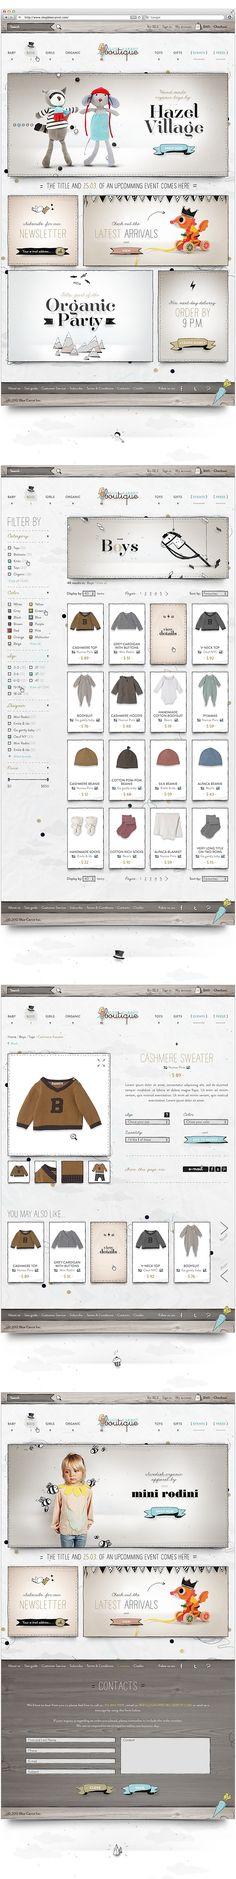 Web design inspiration: texture / paper / whimsical / muted tones | Blue Carrot Boutique | Designer: Stella Petcova